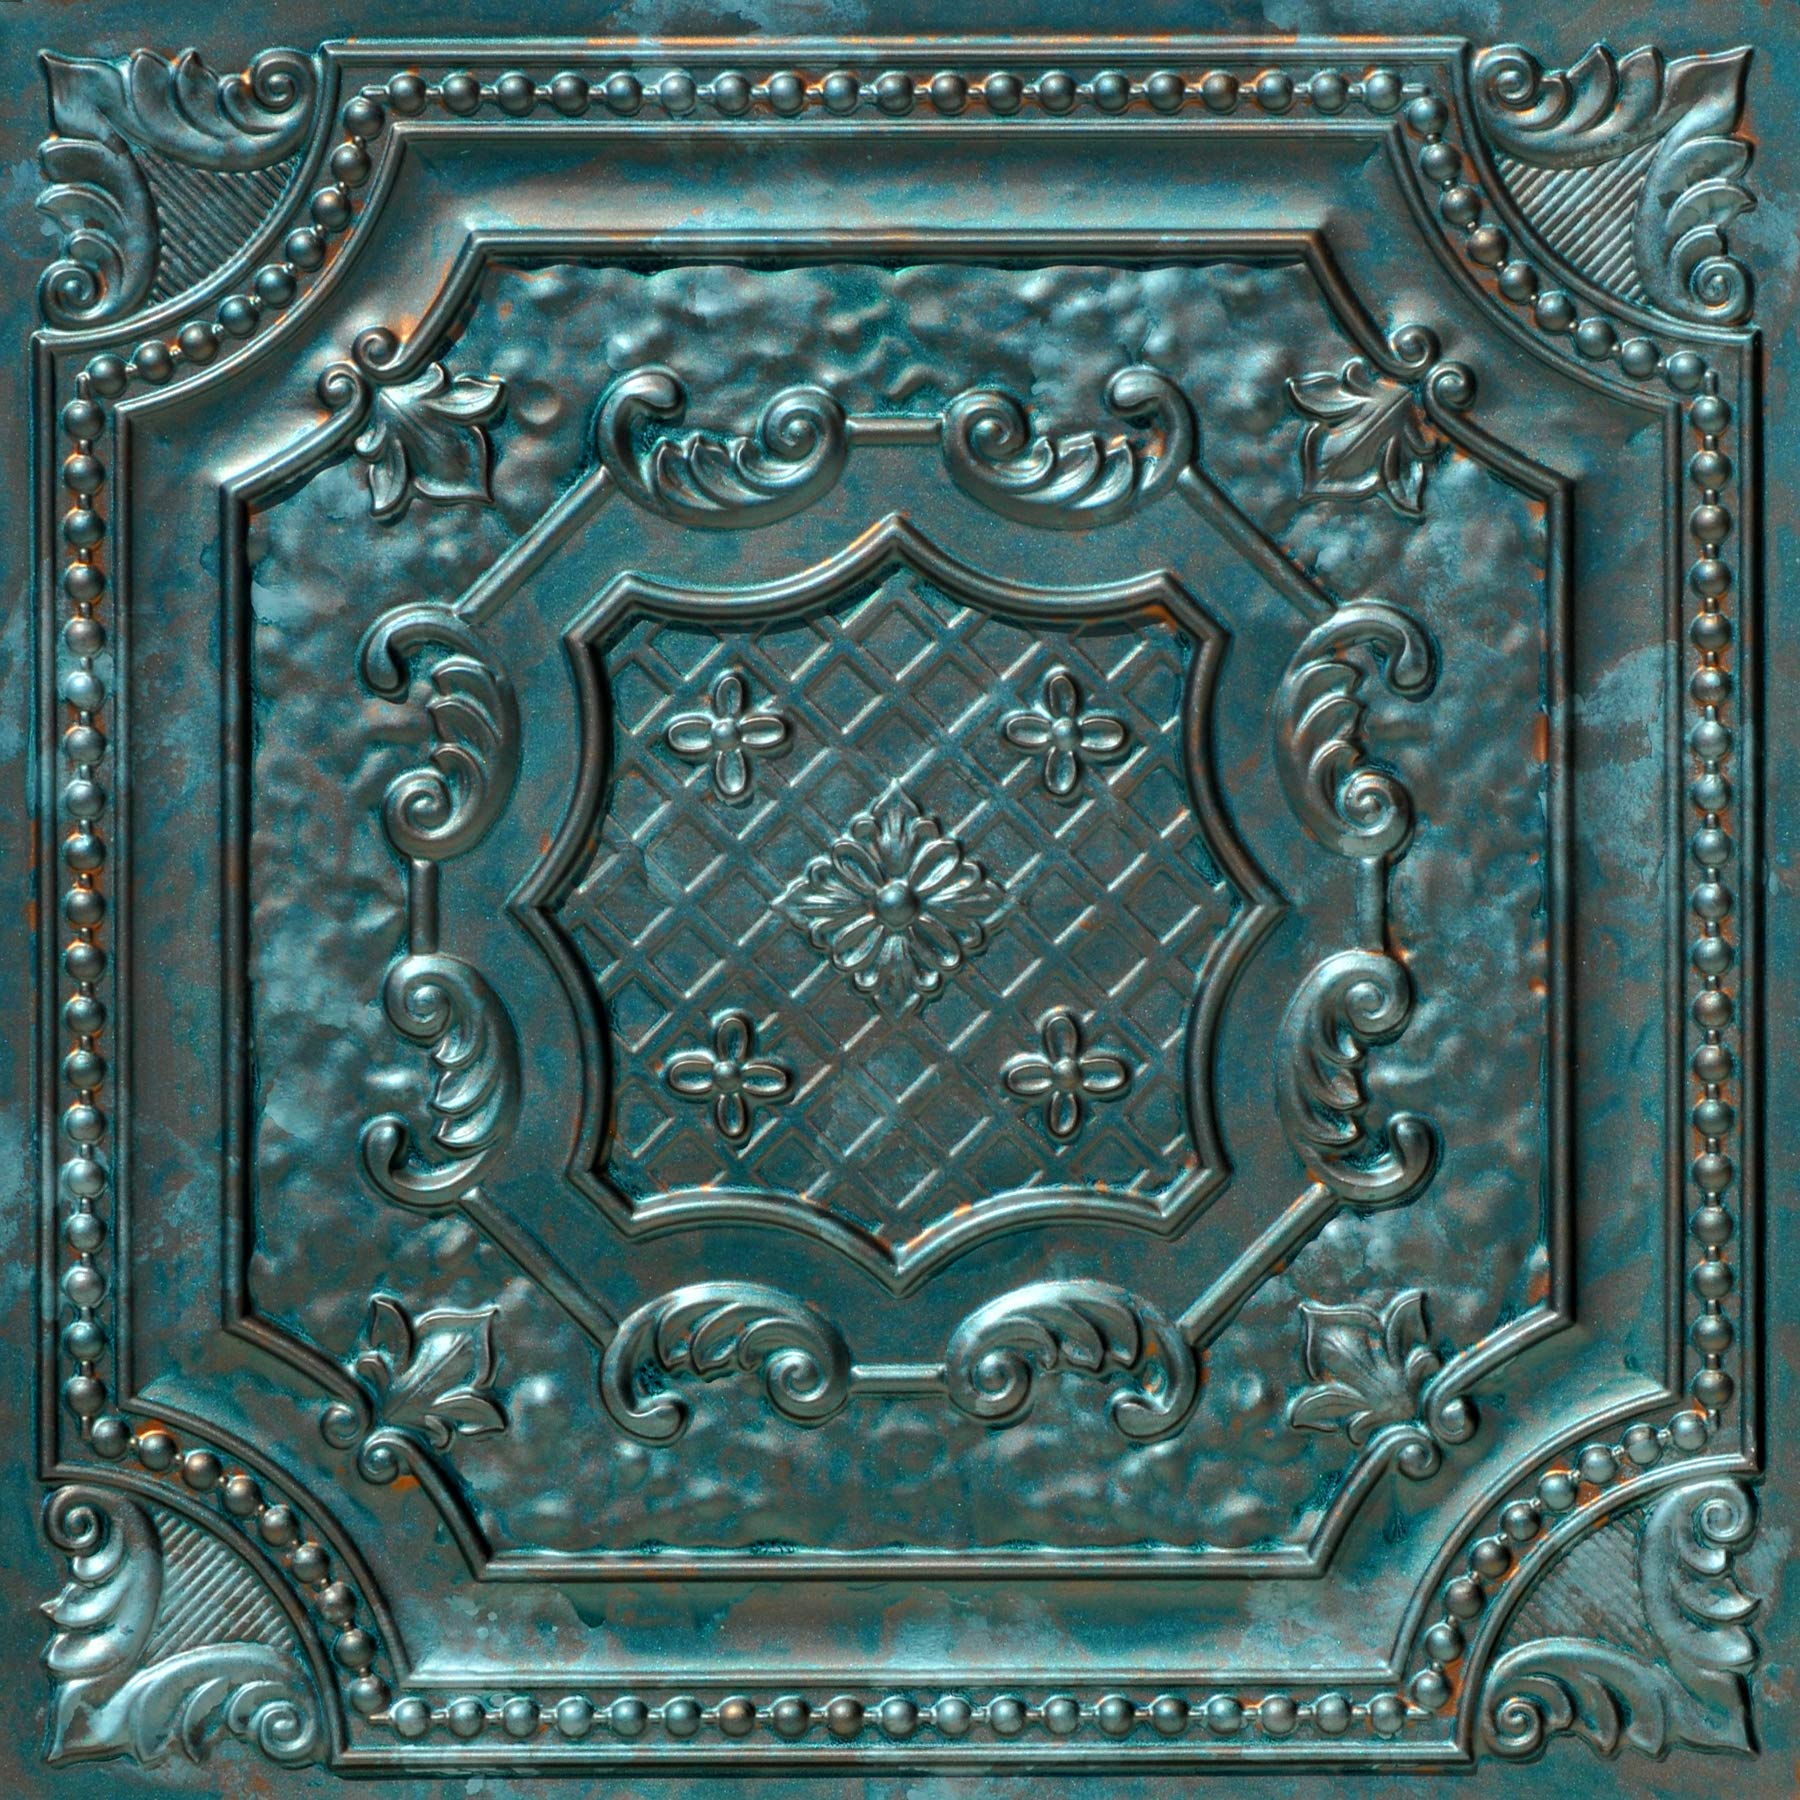 From Plain To Beautiful In Hours DCT04pa-24x24-25 Elizabethan Shield Ceiling Tile Patina 25